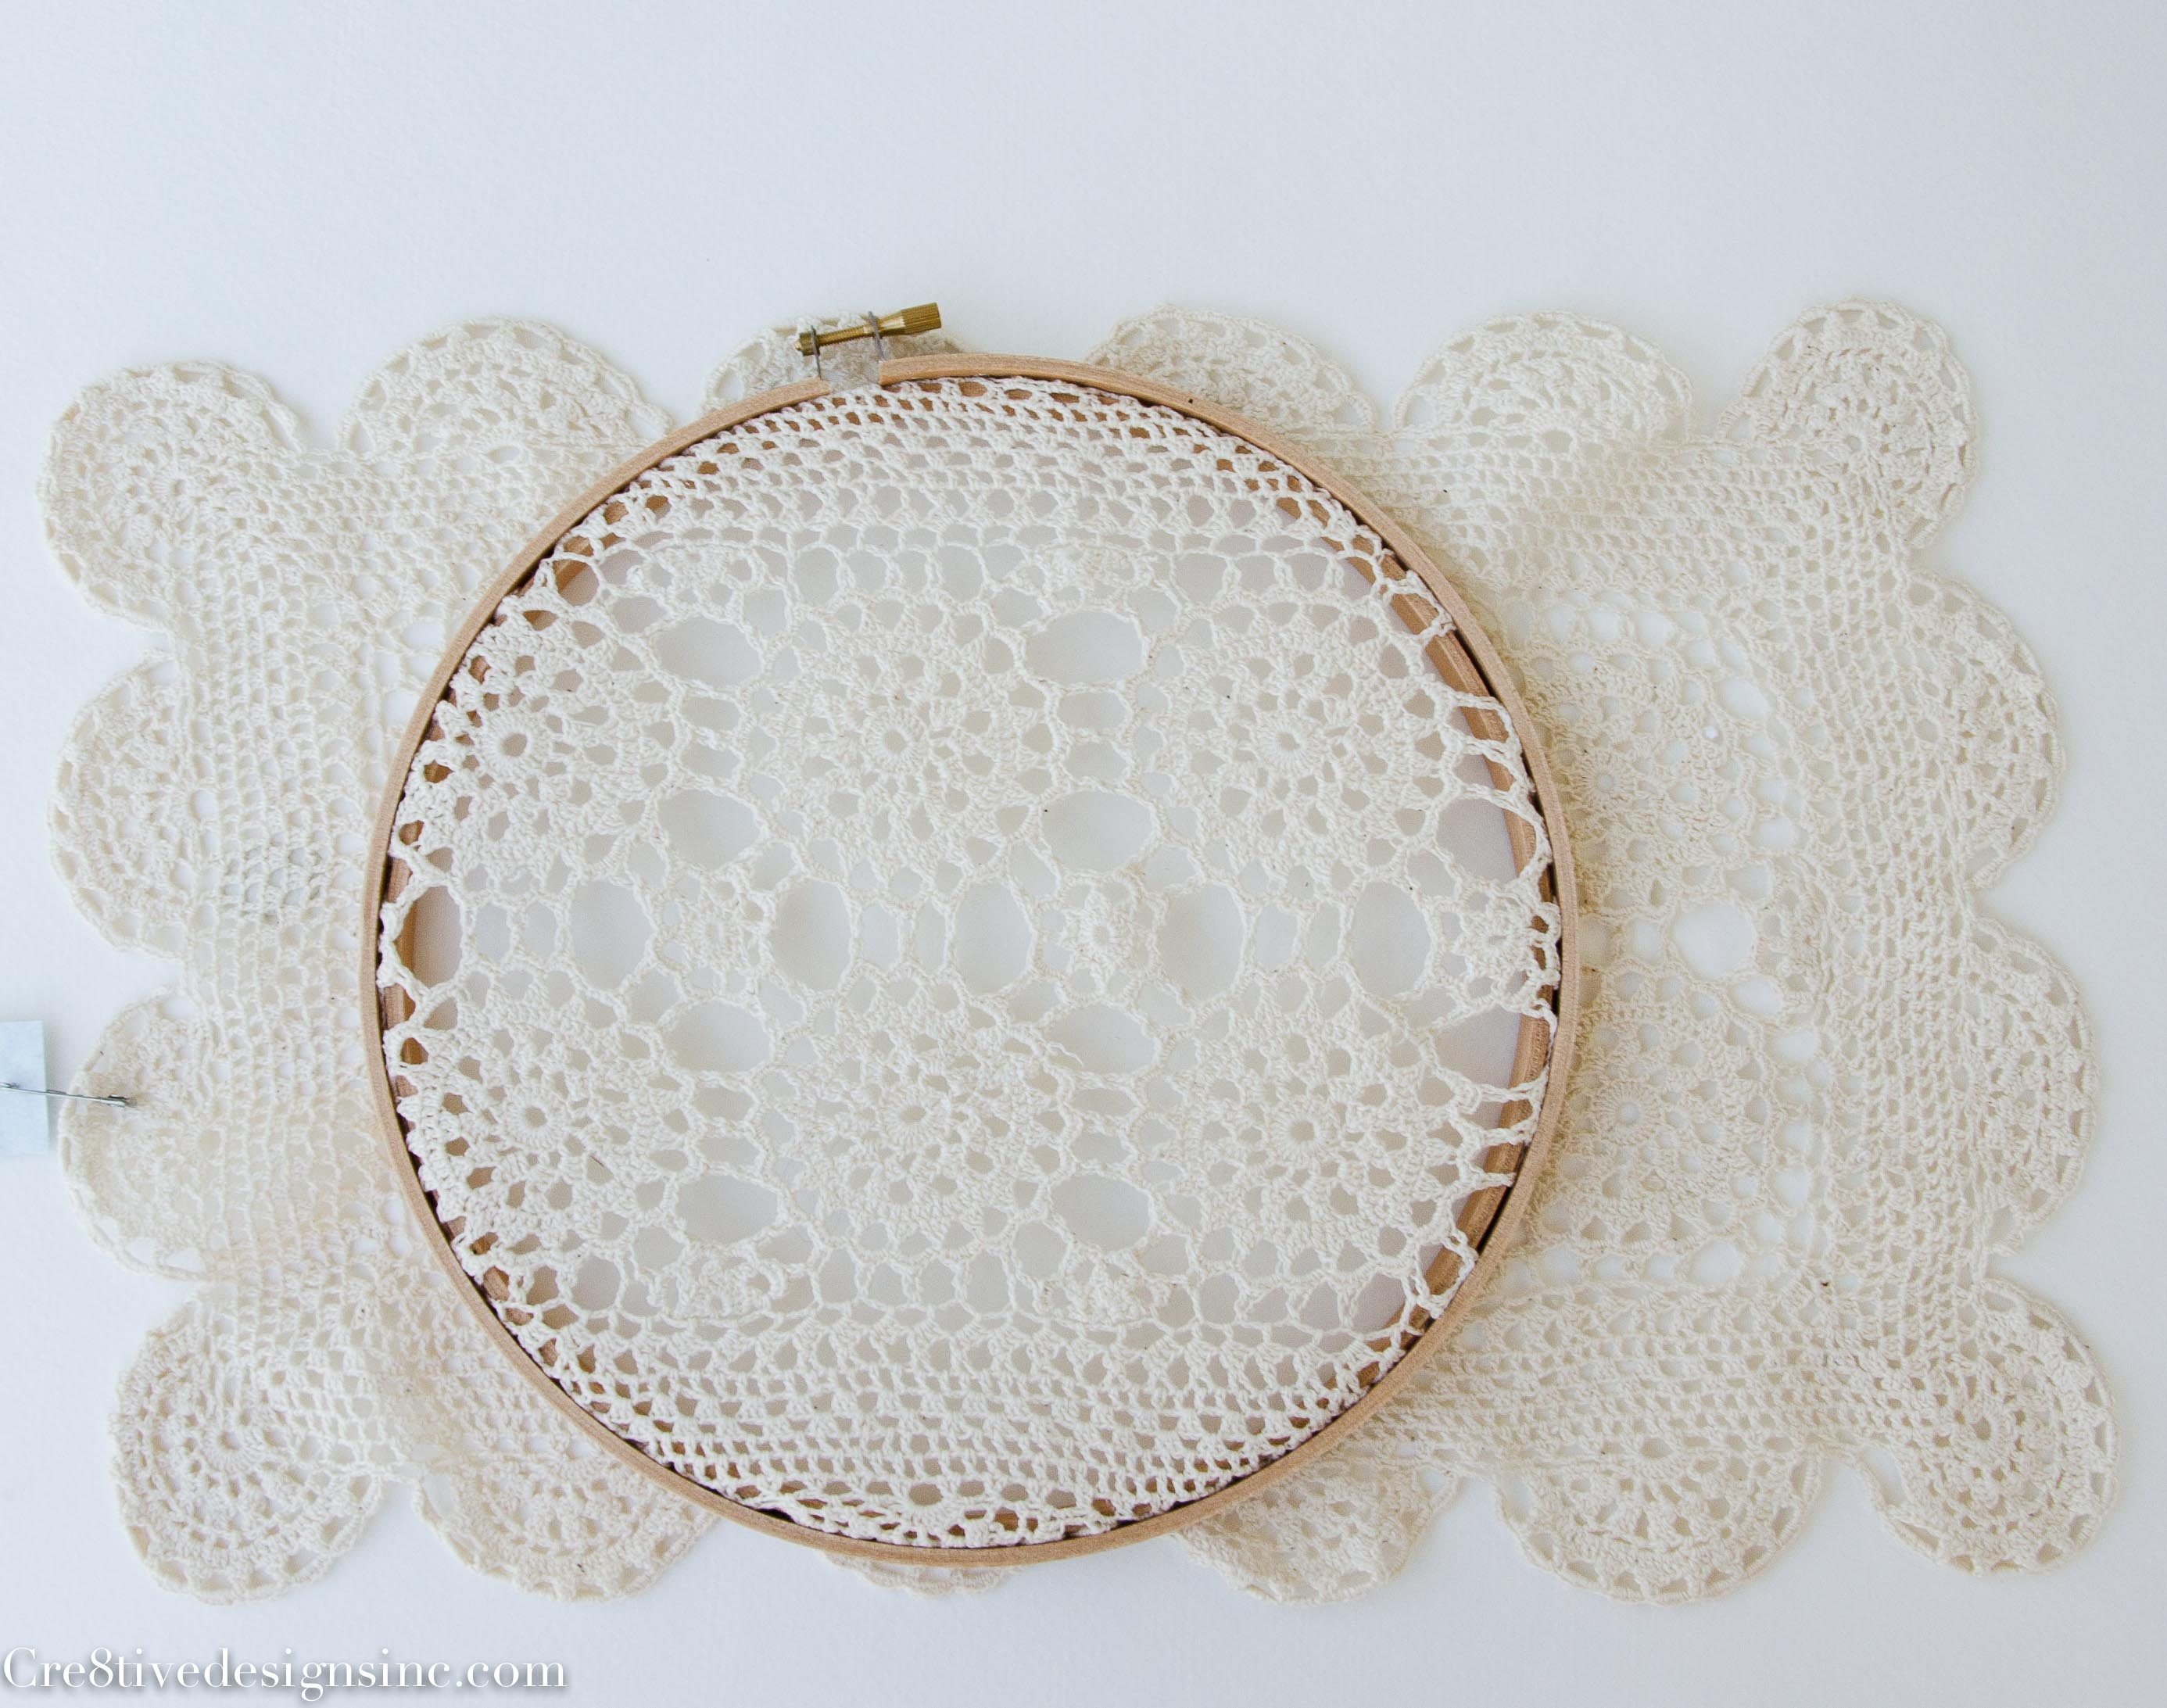 Lace And Crochet Embroidery Hoops  Cre8tive Designs Inc